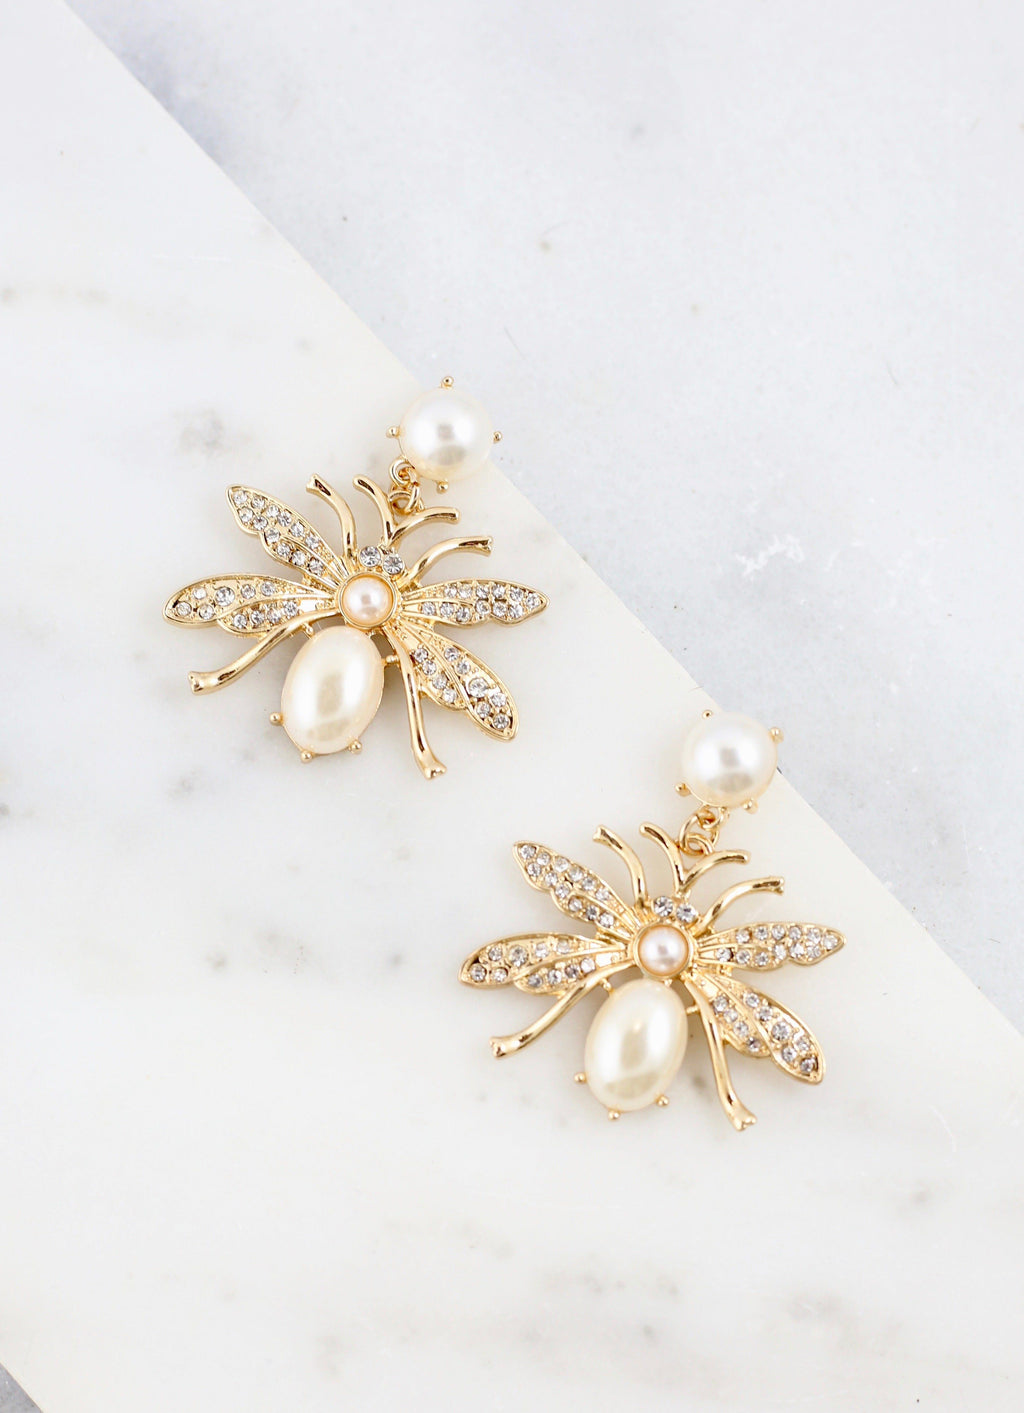 Maeberry Embellished Gold Insect Earring - Caroline Hill